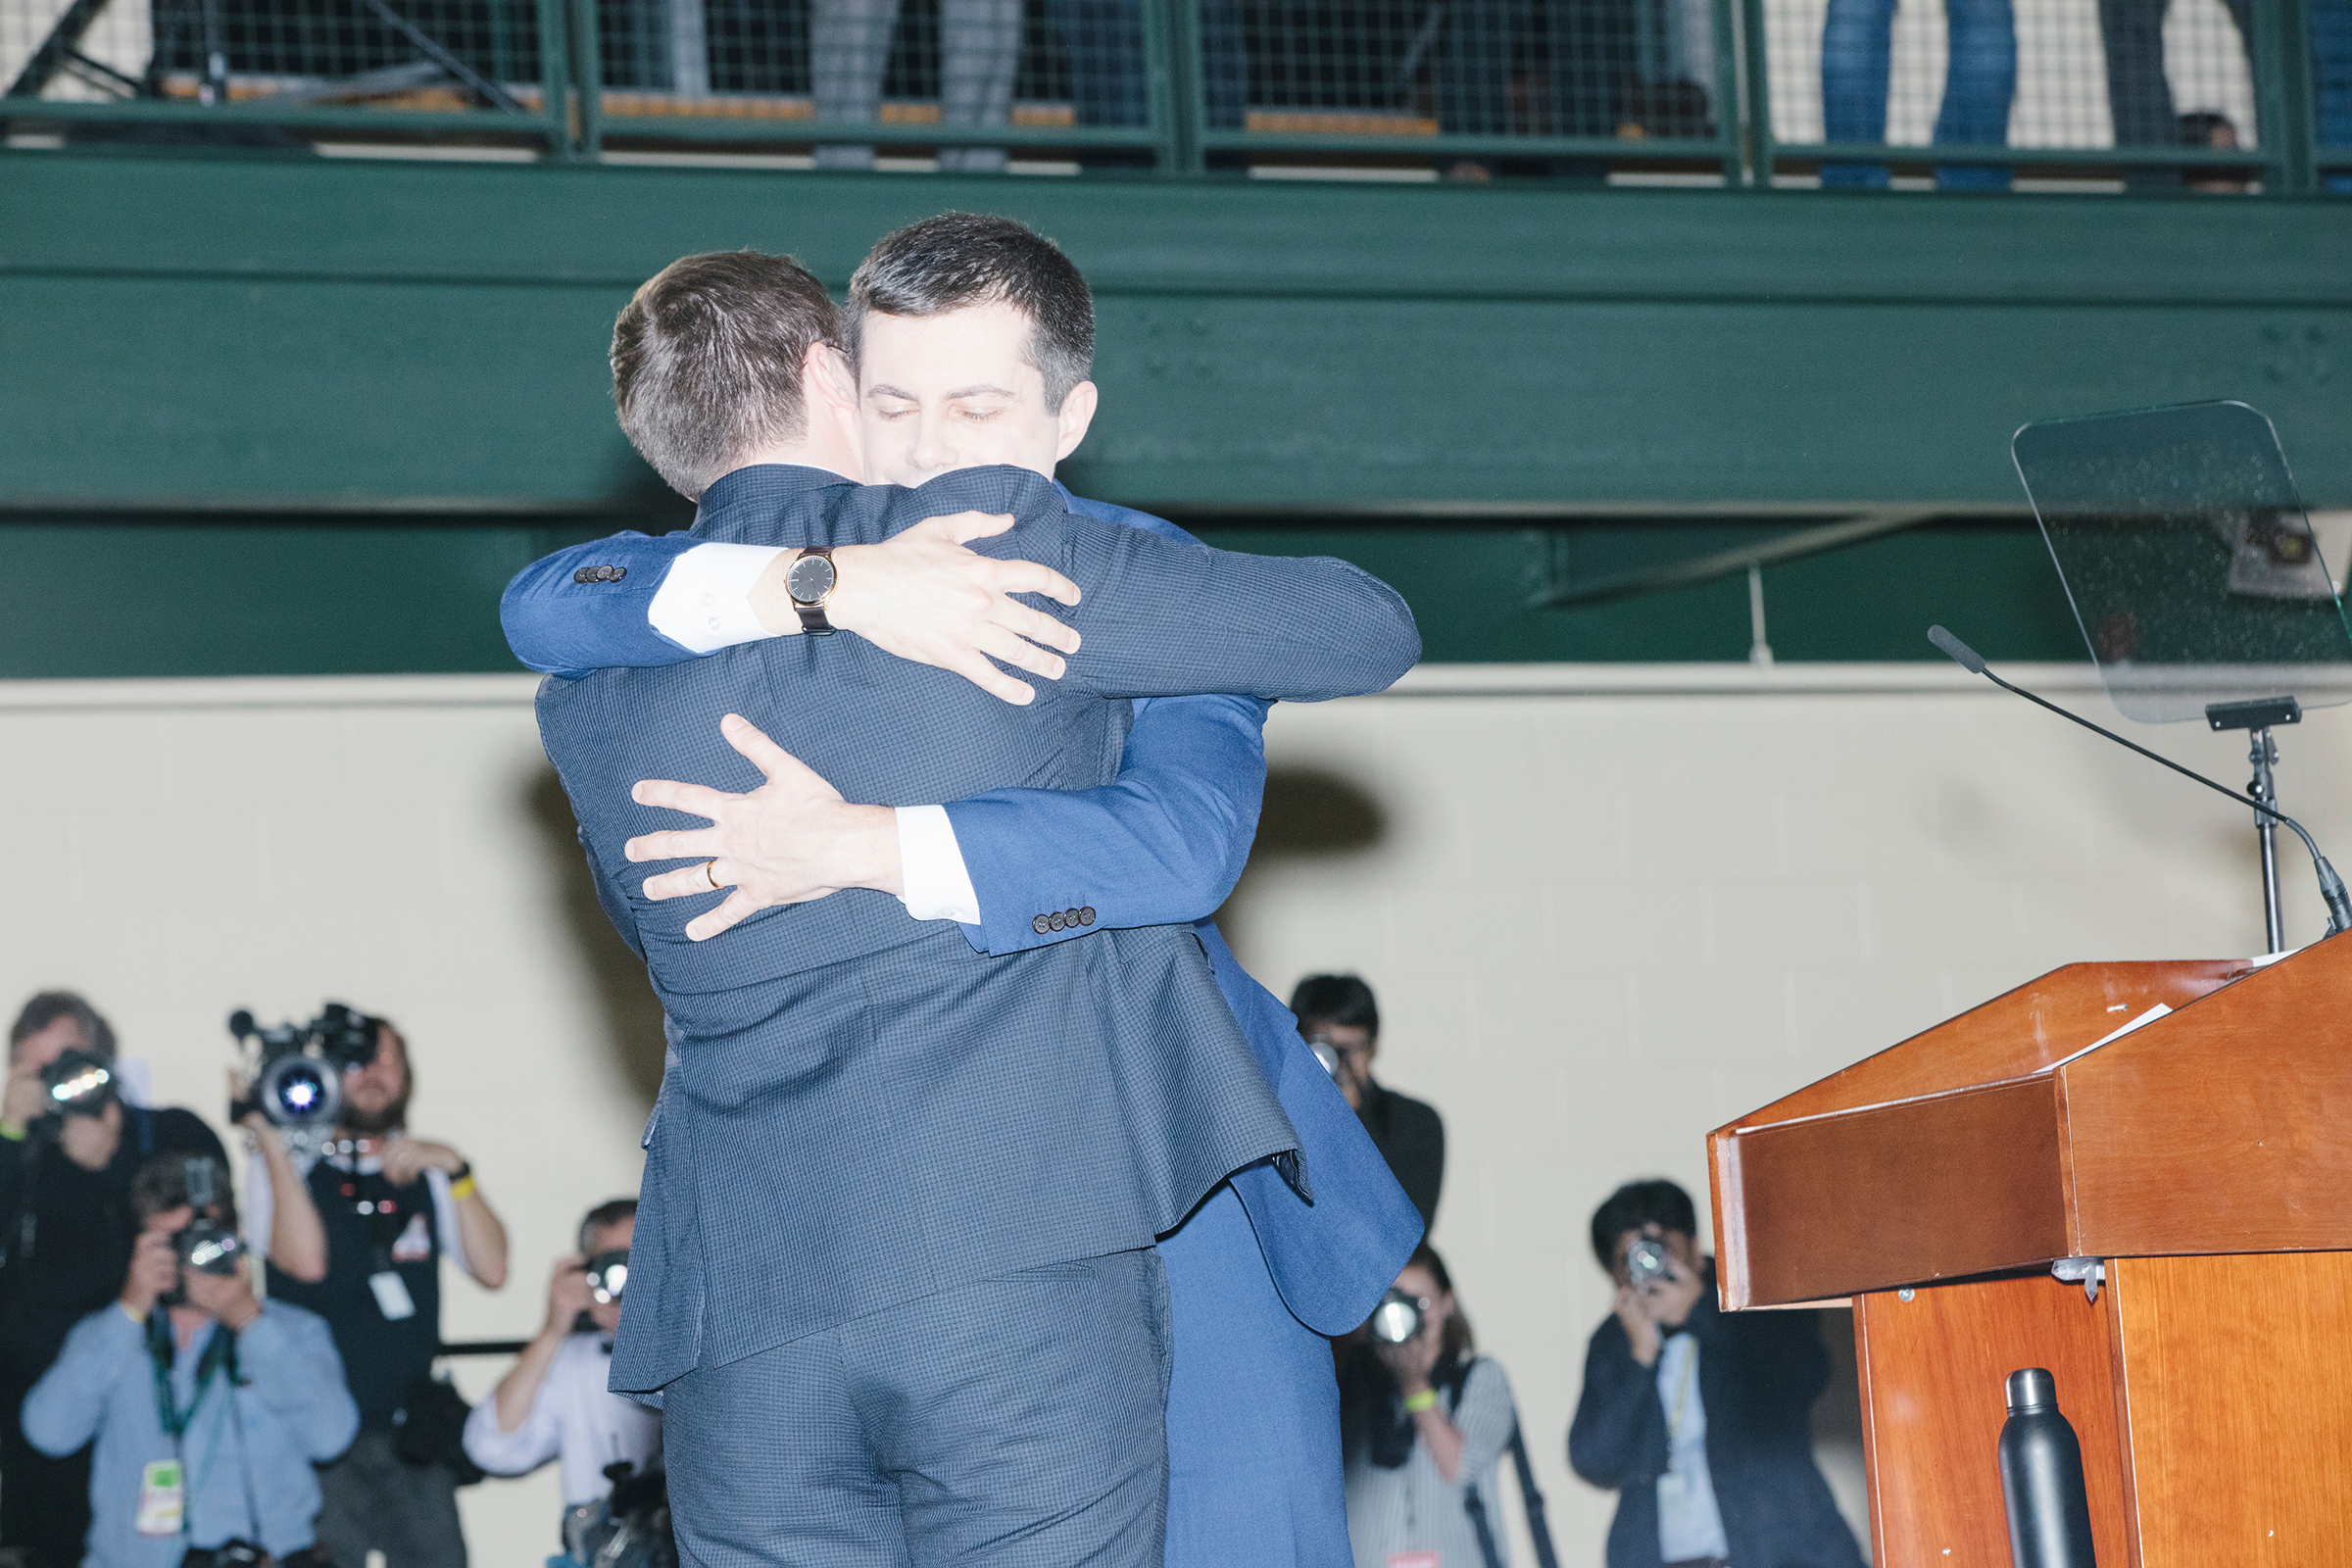 Pete Buttigieg embraces husband Chasten at a rally in Nashua, N.H., on Feb. 11, 2020.